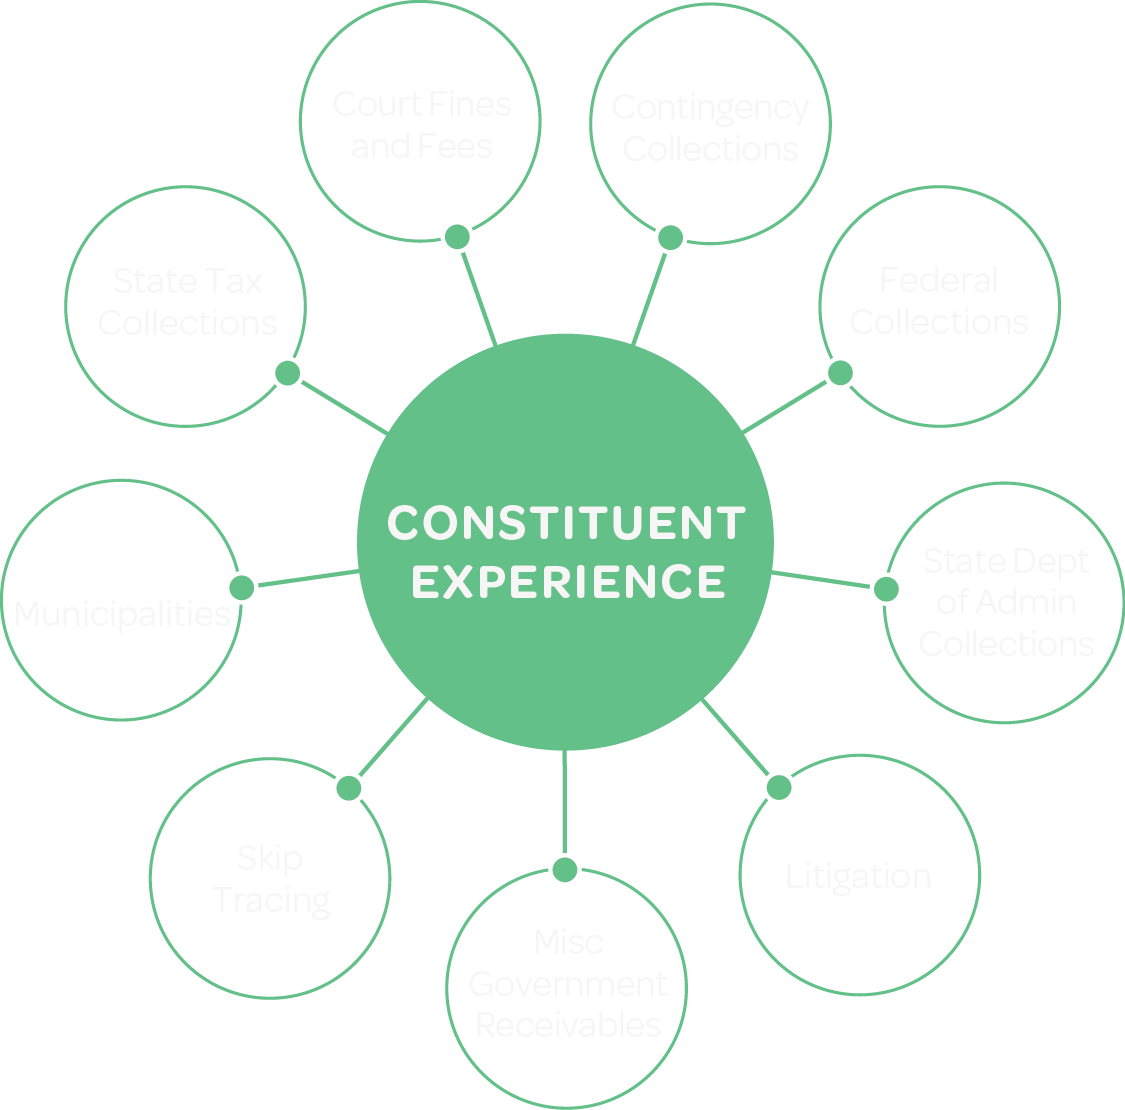 Focus on Constituent Experience image